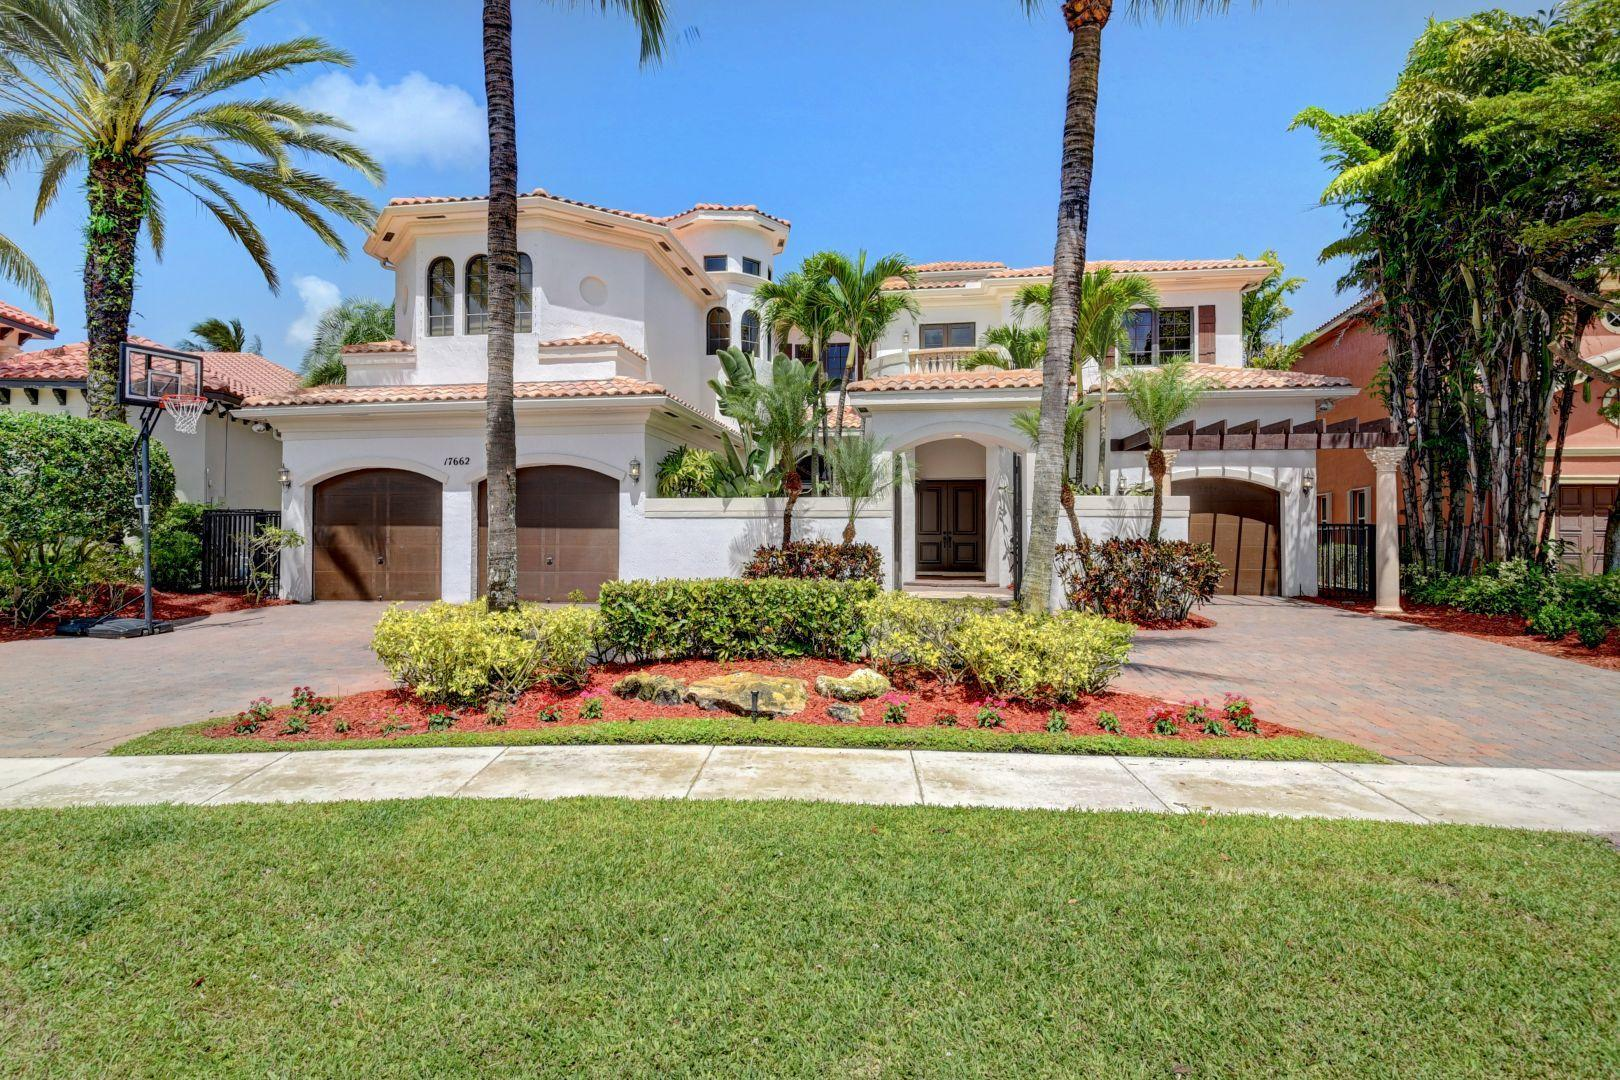 17662 Circle Pond Court, Boca Raton, Florida 33496, 6 Bedrooms Bedrooms, ,5.2 BathroomsBathrooms,Single family detached,For sale,Circle Pond,RX-10633346